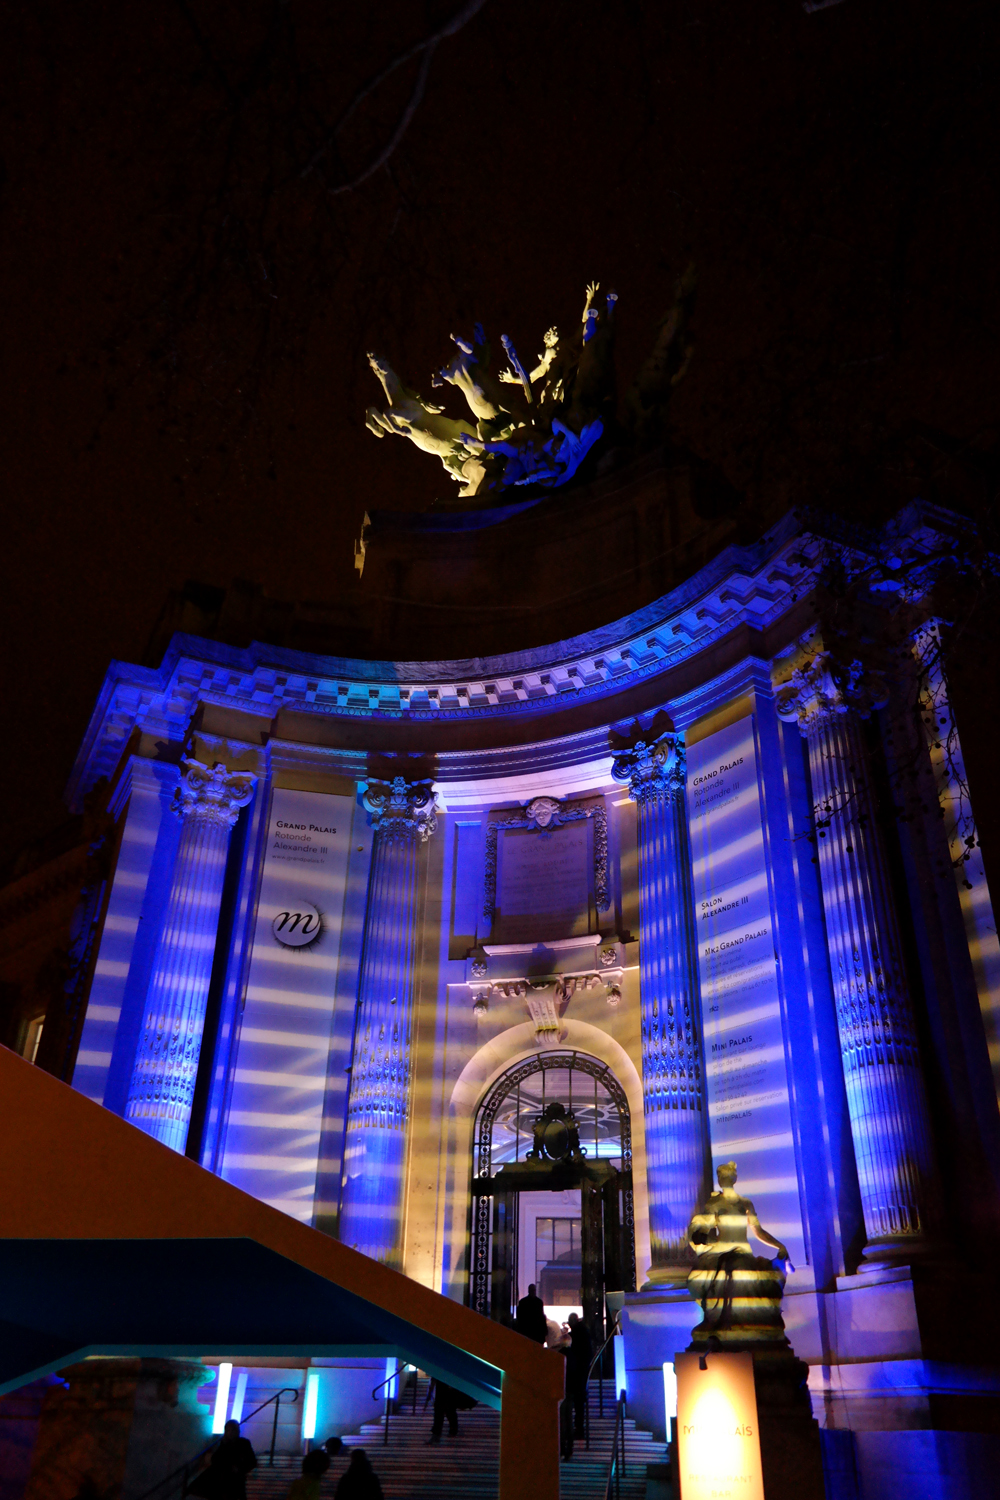 Façade-Mini-Palais-éclairage-marinière-Jean-Paul-Gaultier-soirée-vernissage-exposition-Grand-Palais-Paris-photo-united-states-of-paris-blog